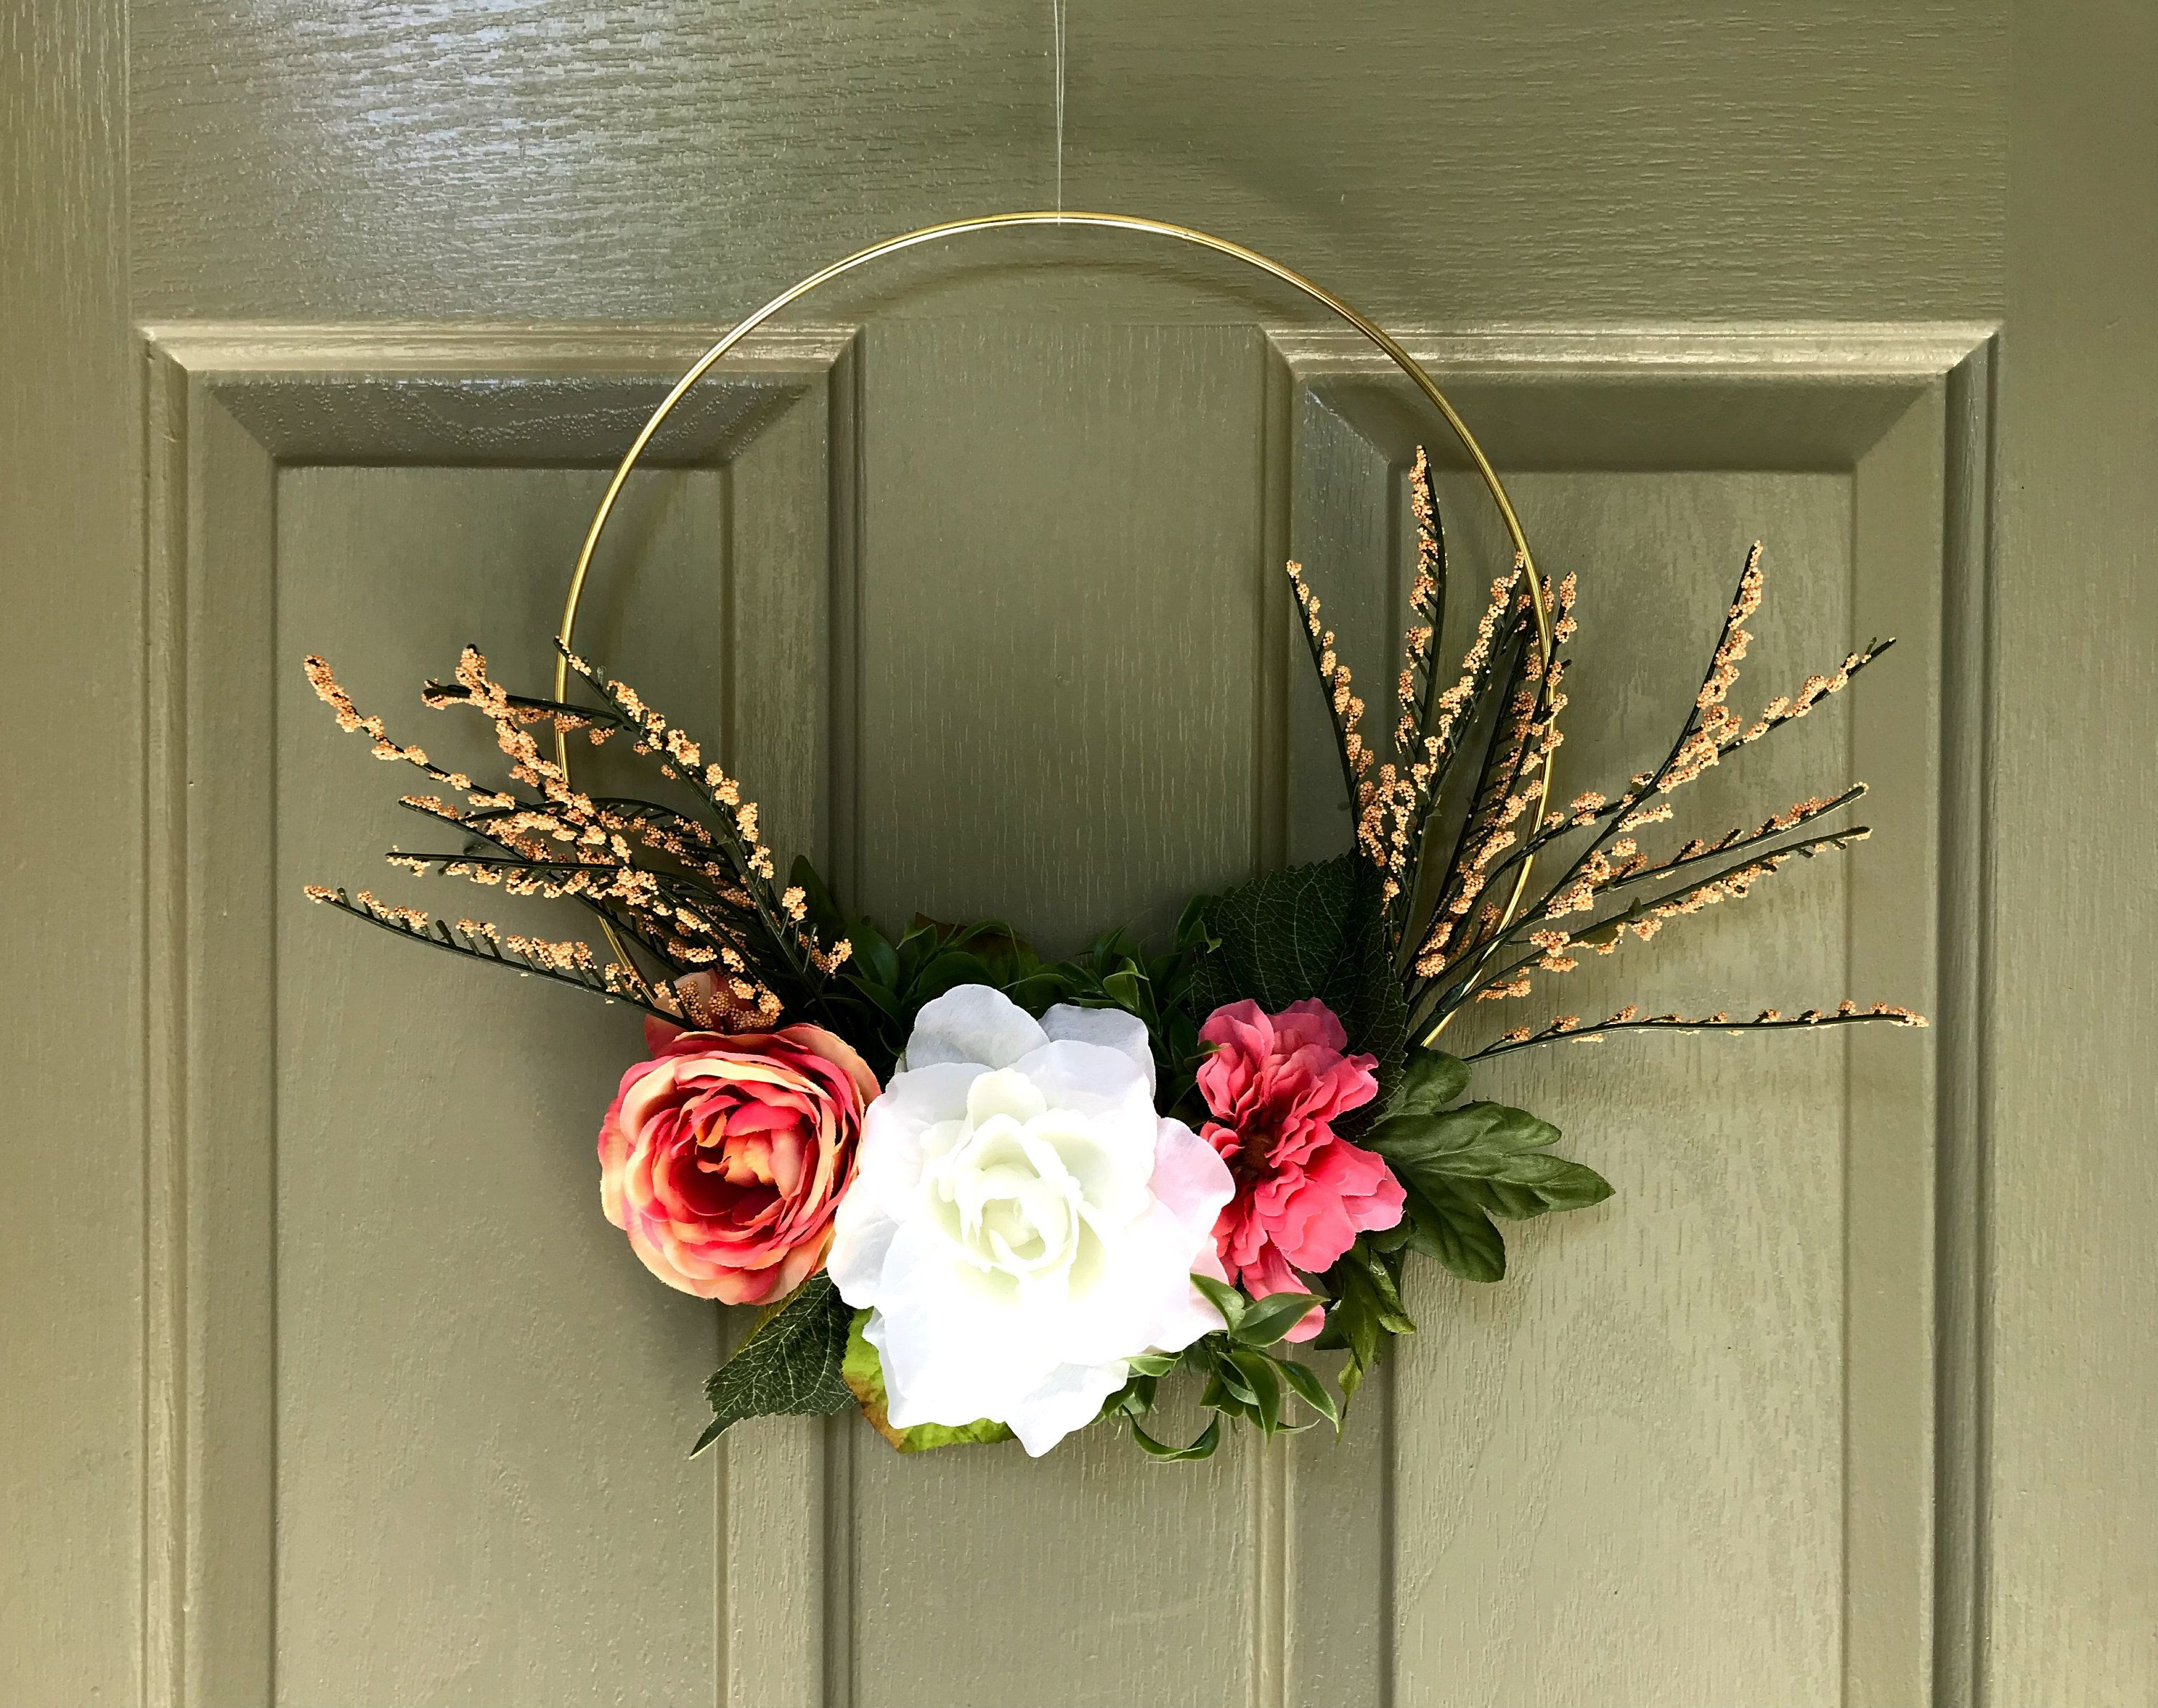 Wedding decorations at home  Floral Wreath  Wedding Wreath  Floral Wedding Wreath Front